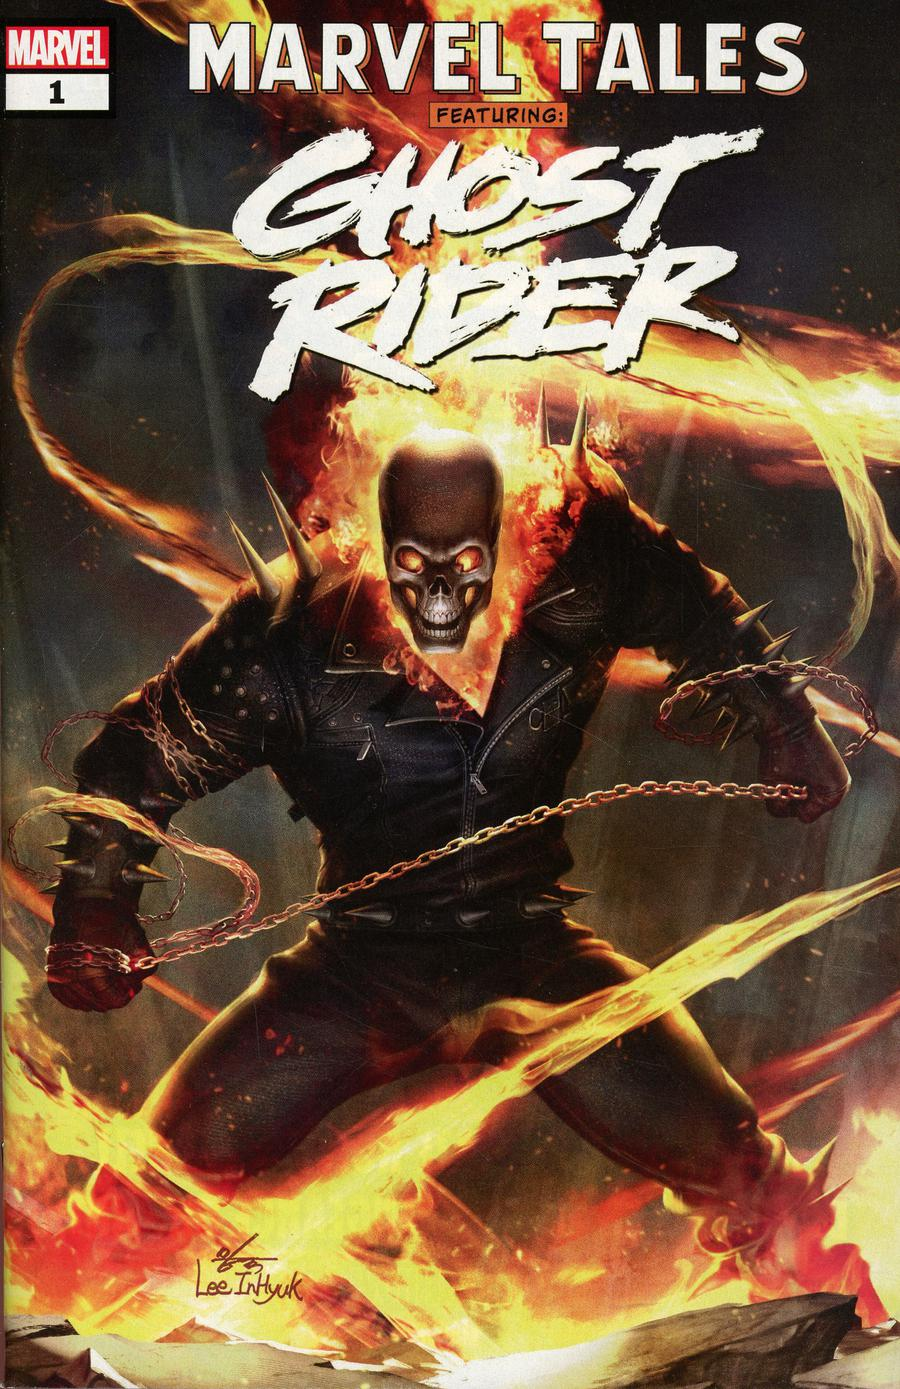 Marvel Tales Ghost Rider #1 Cover A Regular Inhyuk Lee Cover